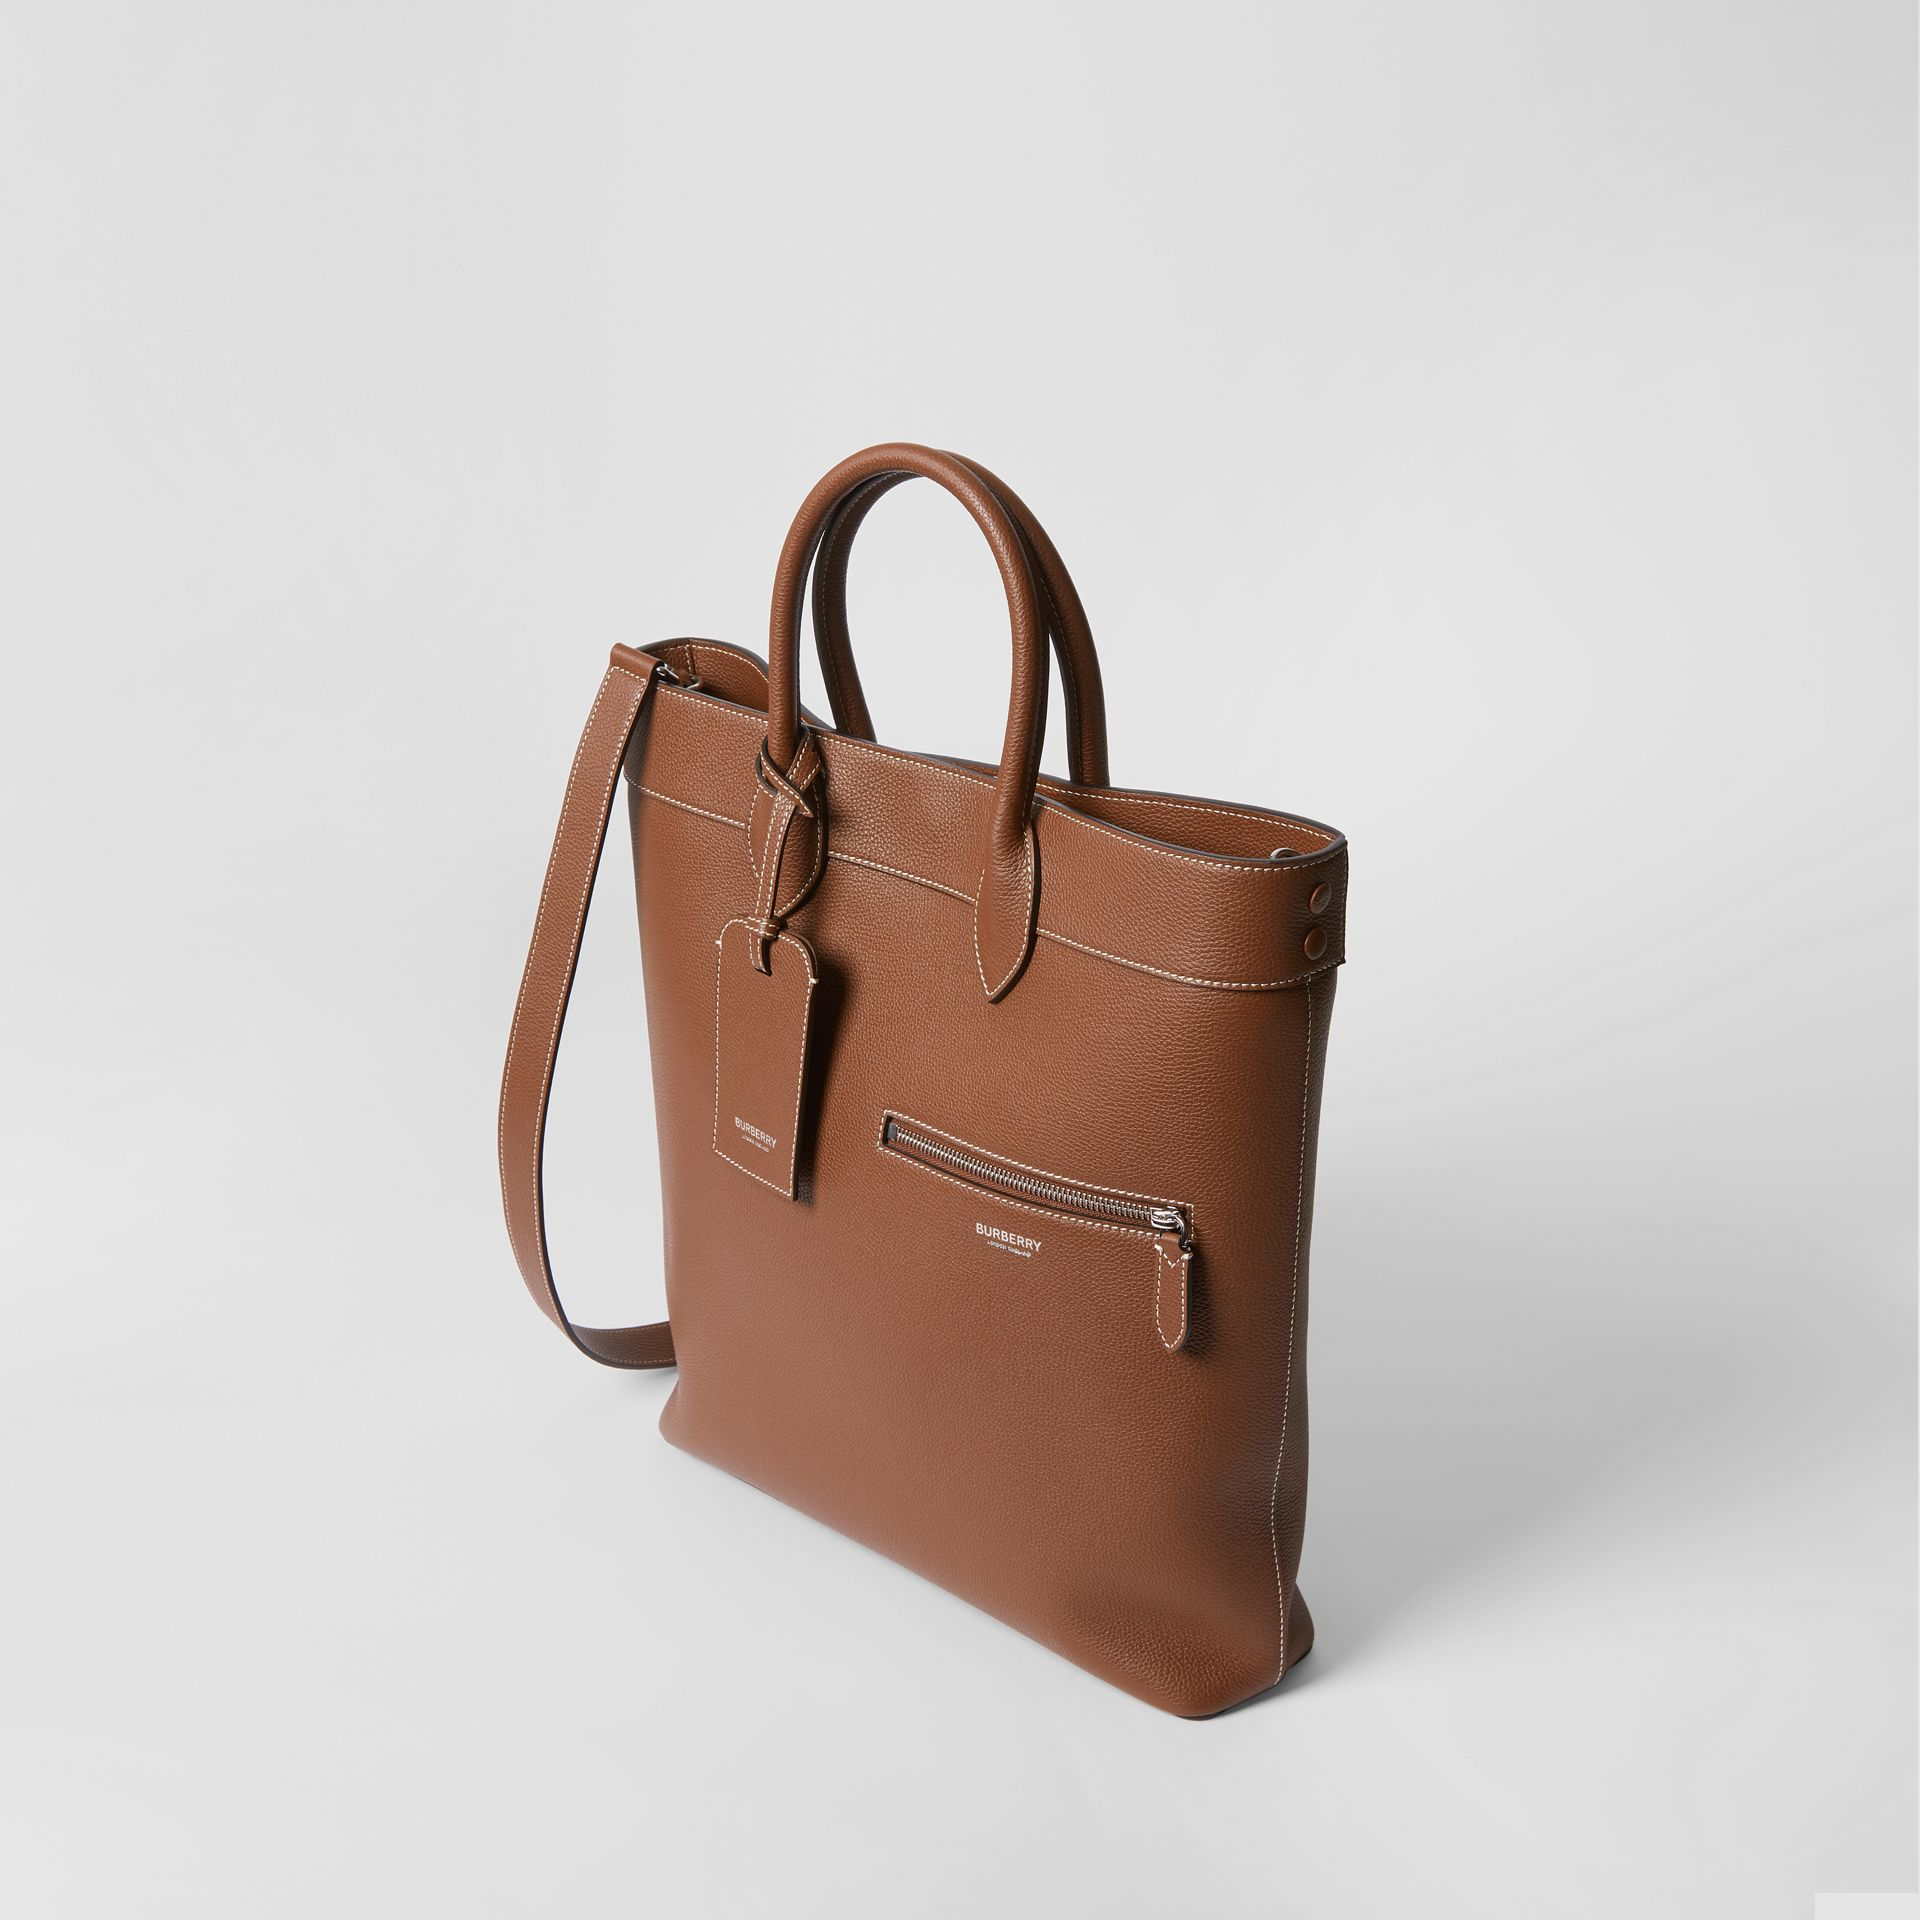 Grainy Leather Tote in Tan | Burberry - gallery image 4